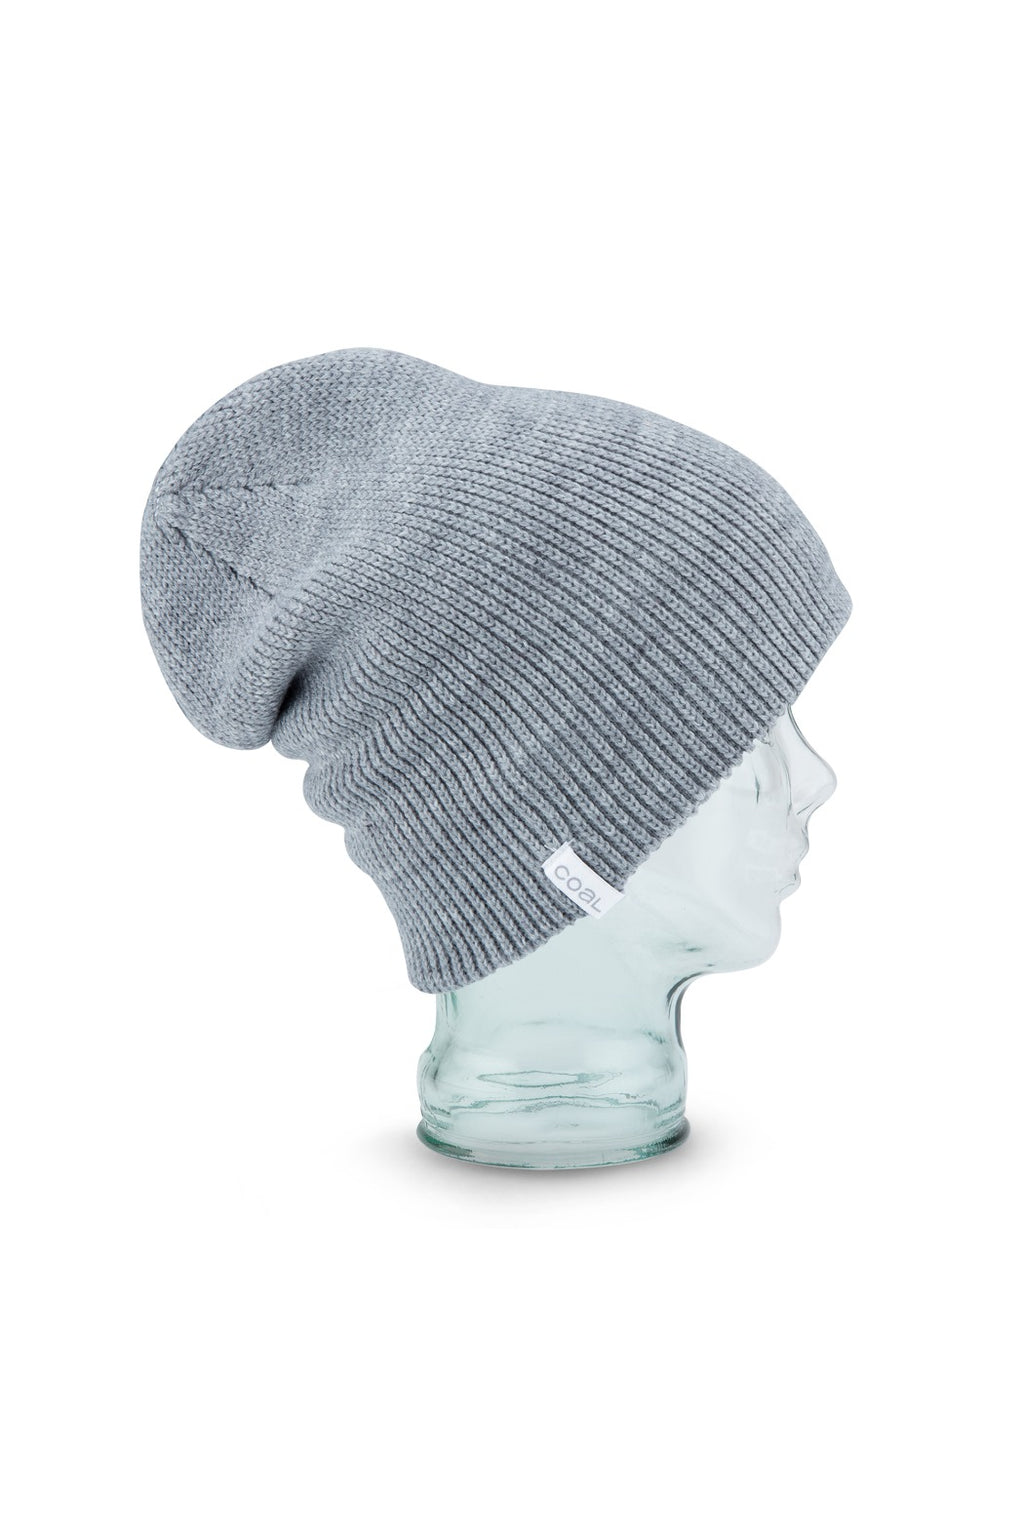 Coal Frena Solid Beanie - Heather Grey